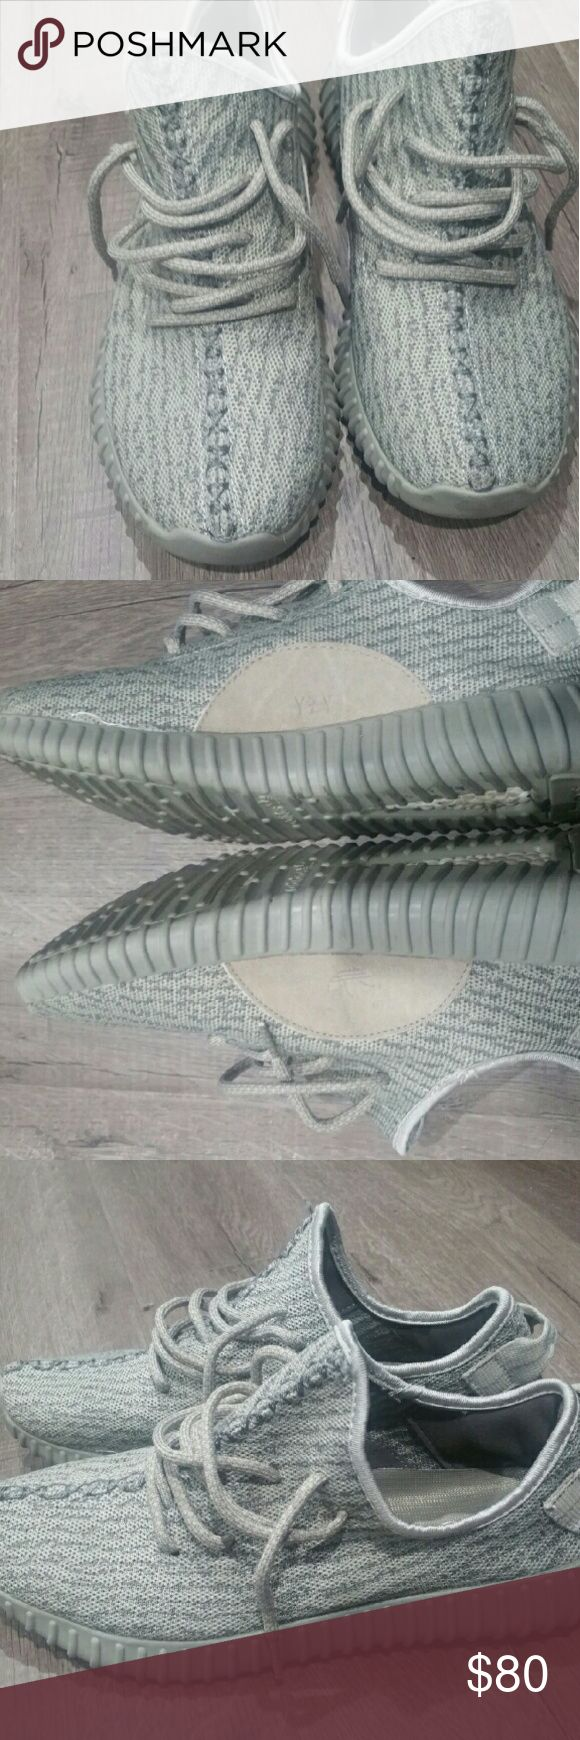 Yeezy Adidas Boost kanye west Excelent condition Yeezy Shoes Sneakers